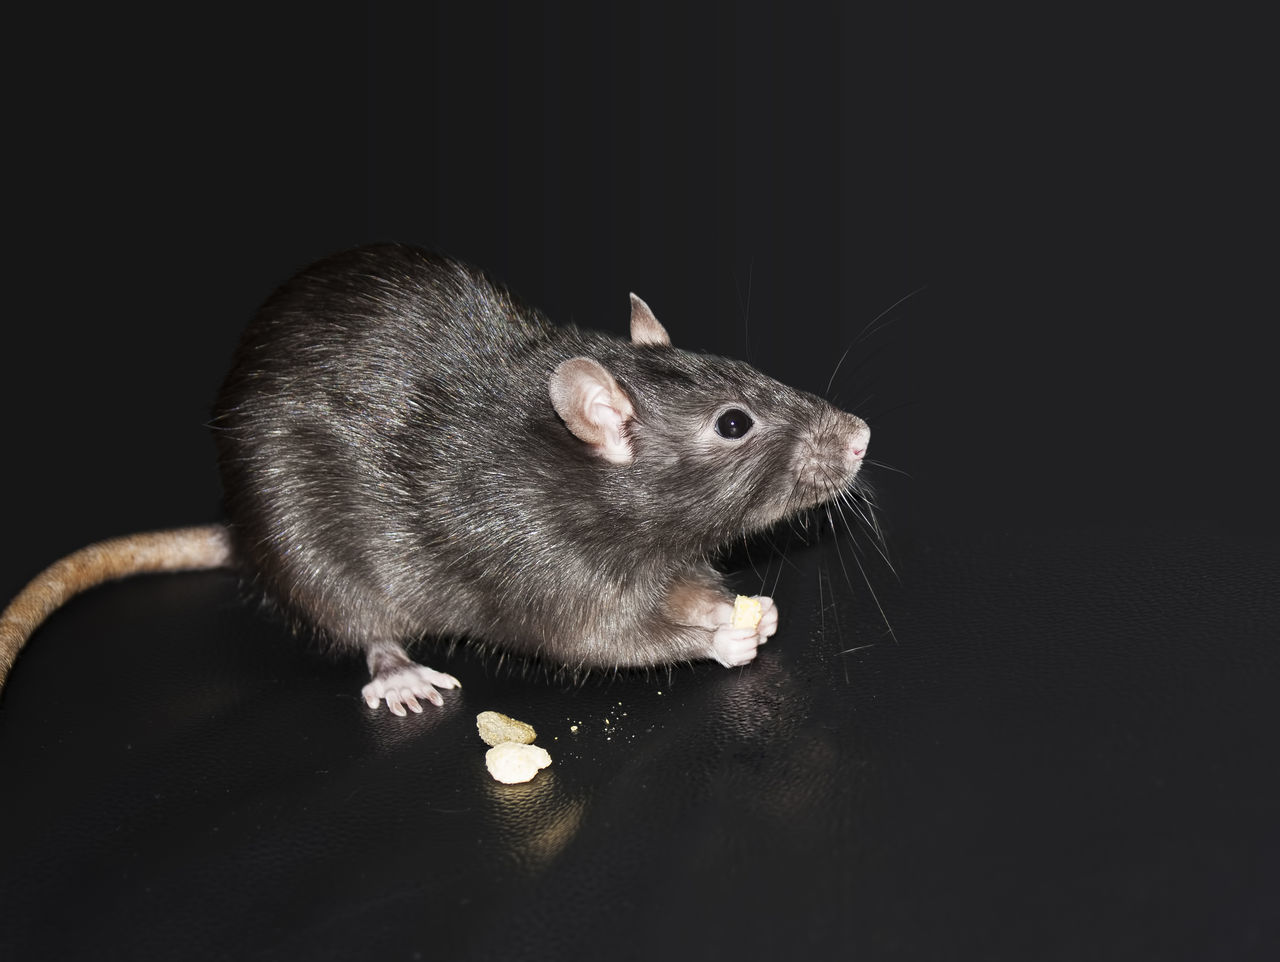 A very cute rat eating a treat. Animal Themes Black Cute Domestic Animals Eating Pet Rat Rodent